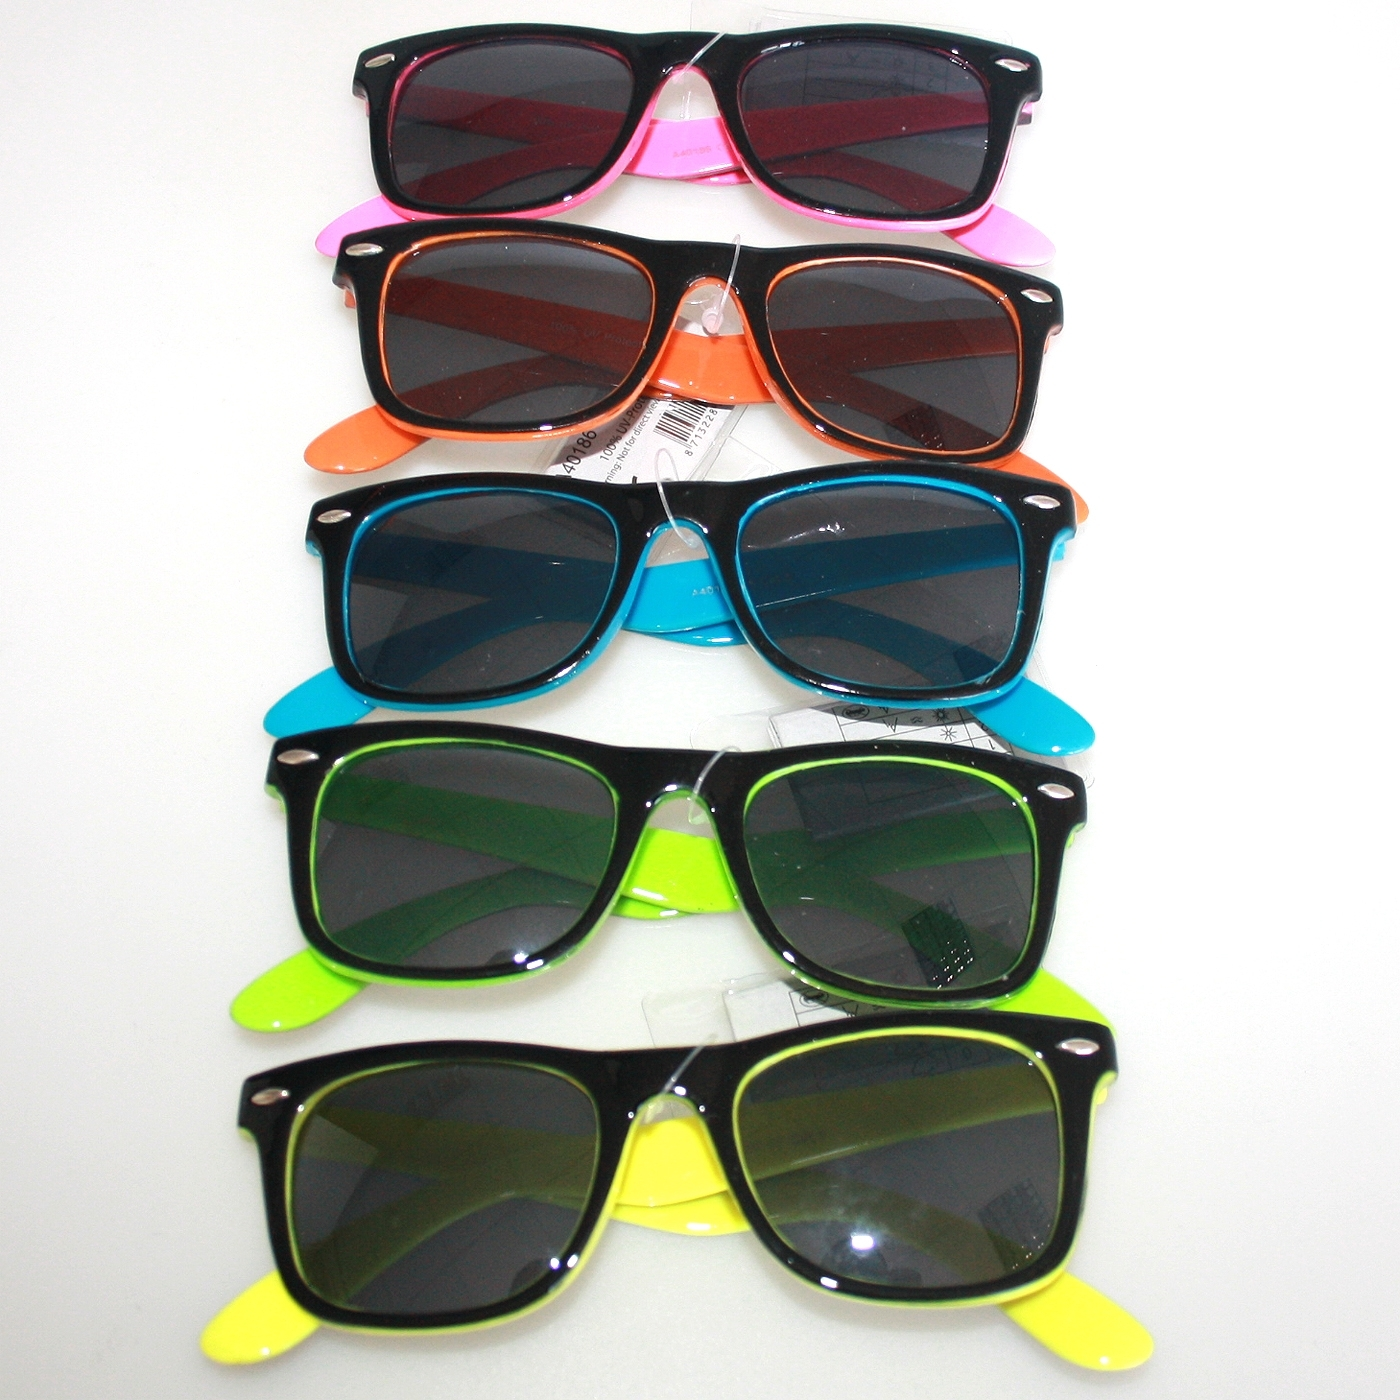 black ray ban style sunglasses  sunglass black/collor frame rayban style. loading zoom